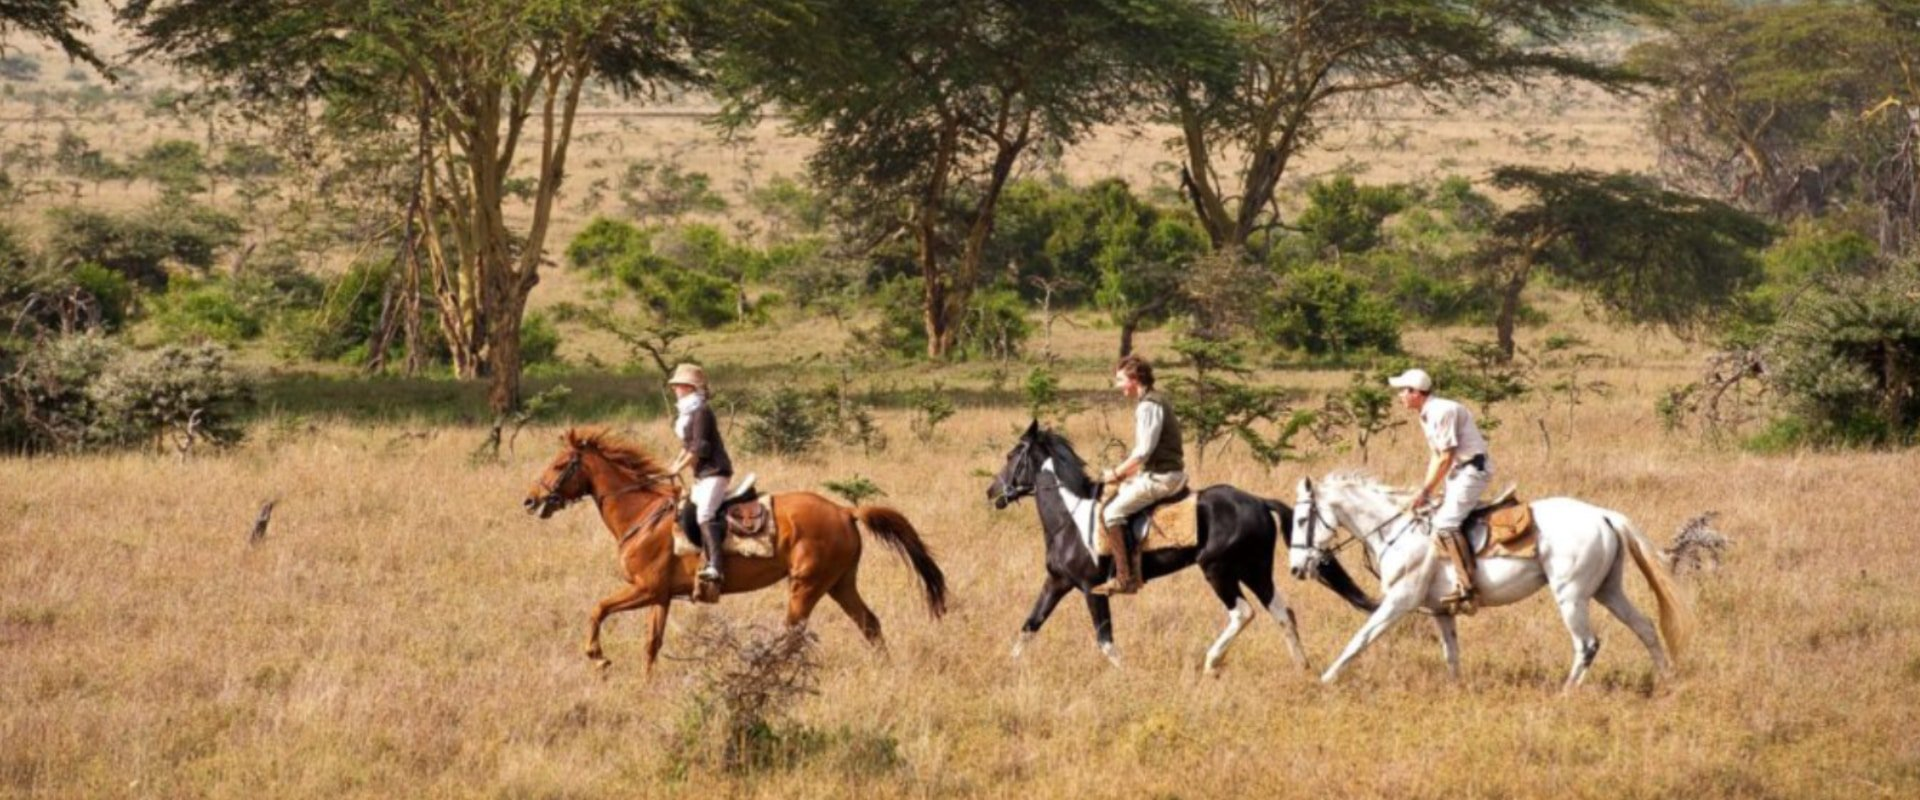 Experience the unique exhilaration of a horse riding safari